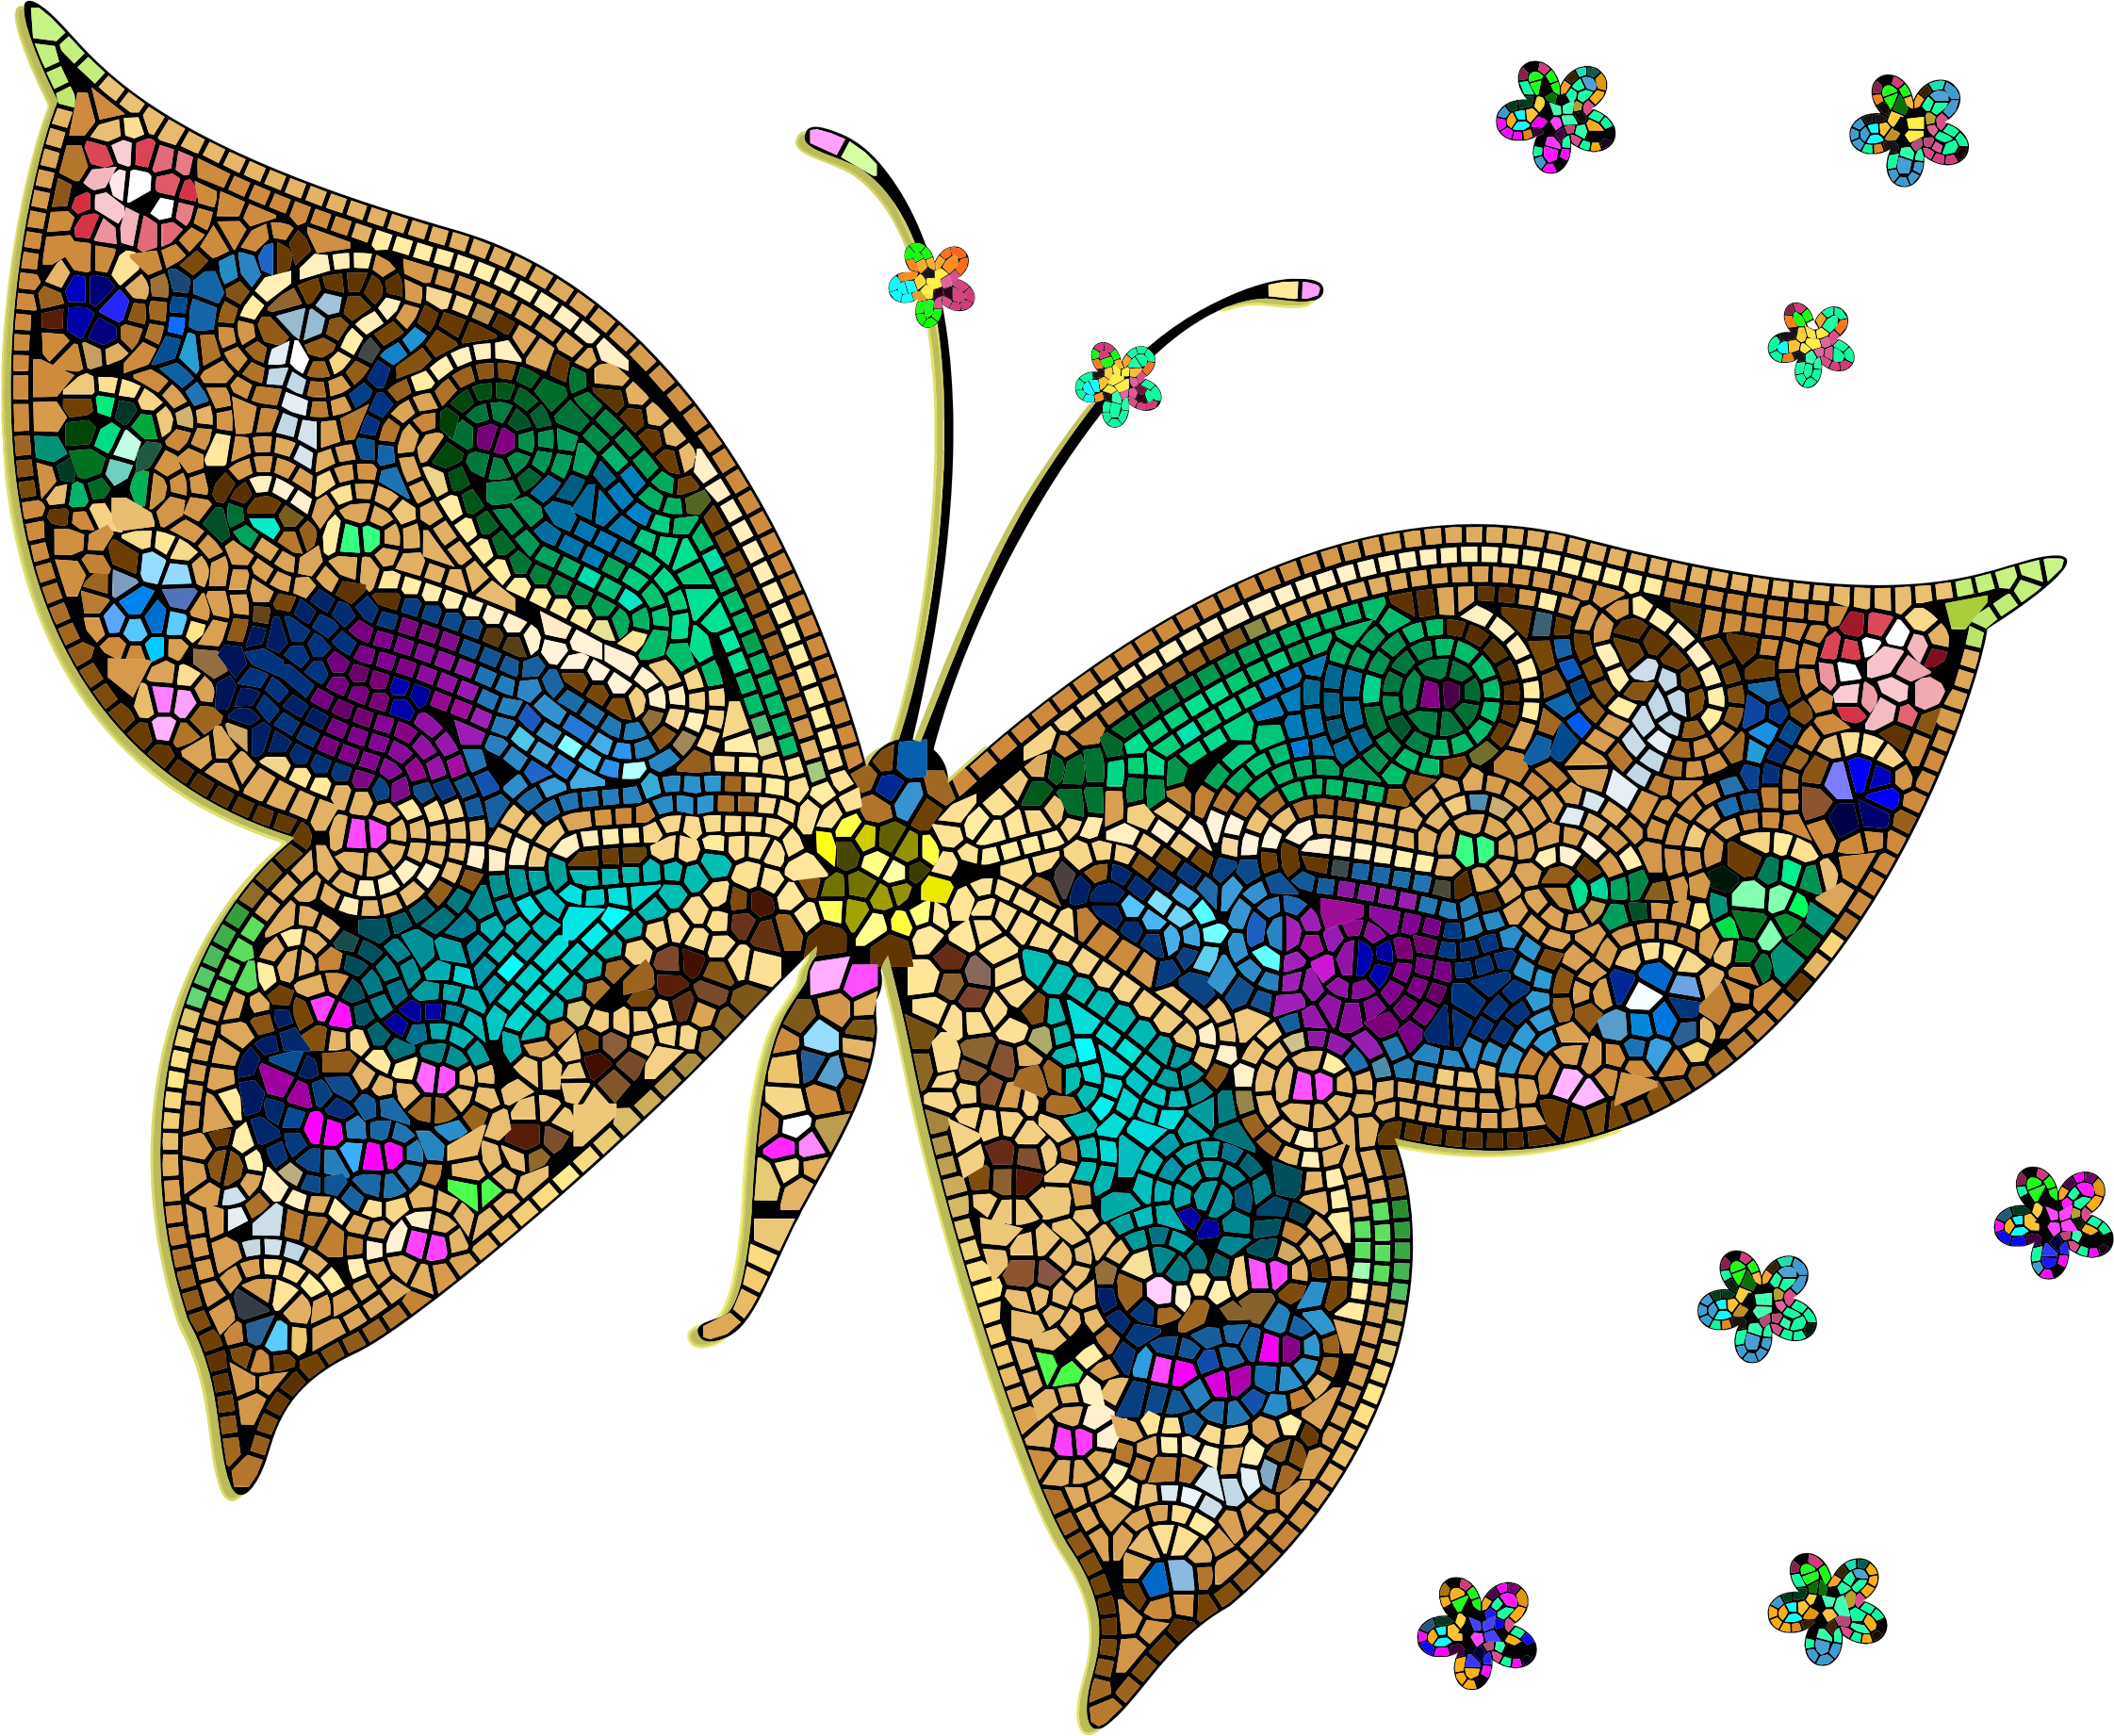 Transparent butterflies clipart colored - Colorful Tiled Icons Png - Colorful Butterfly